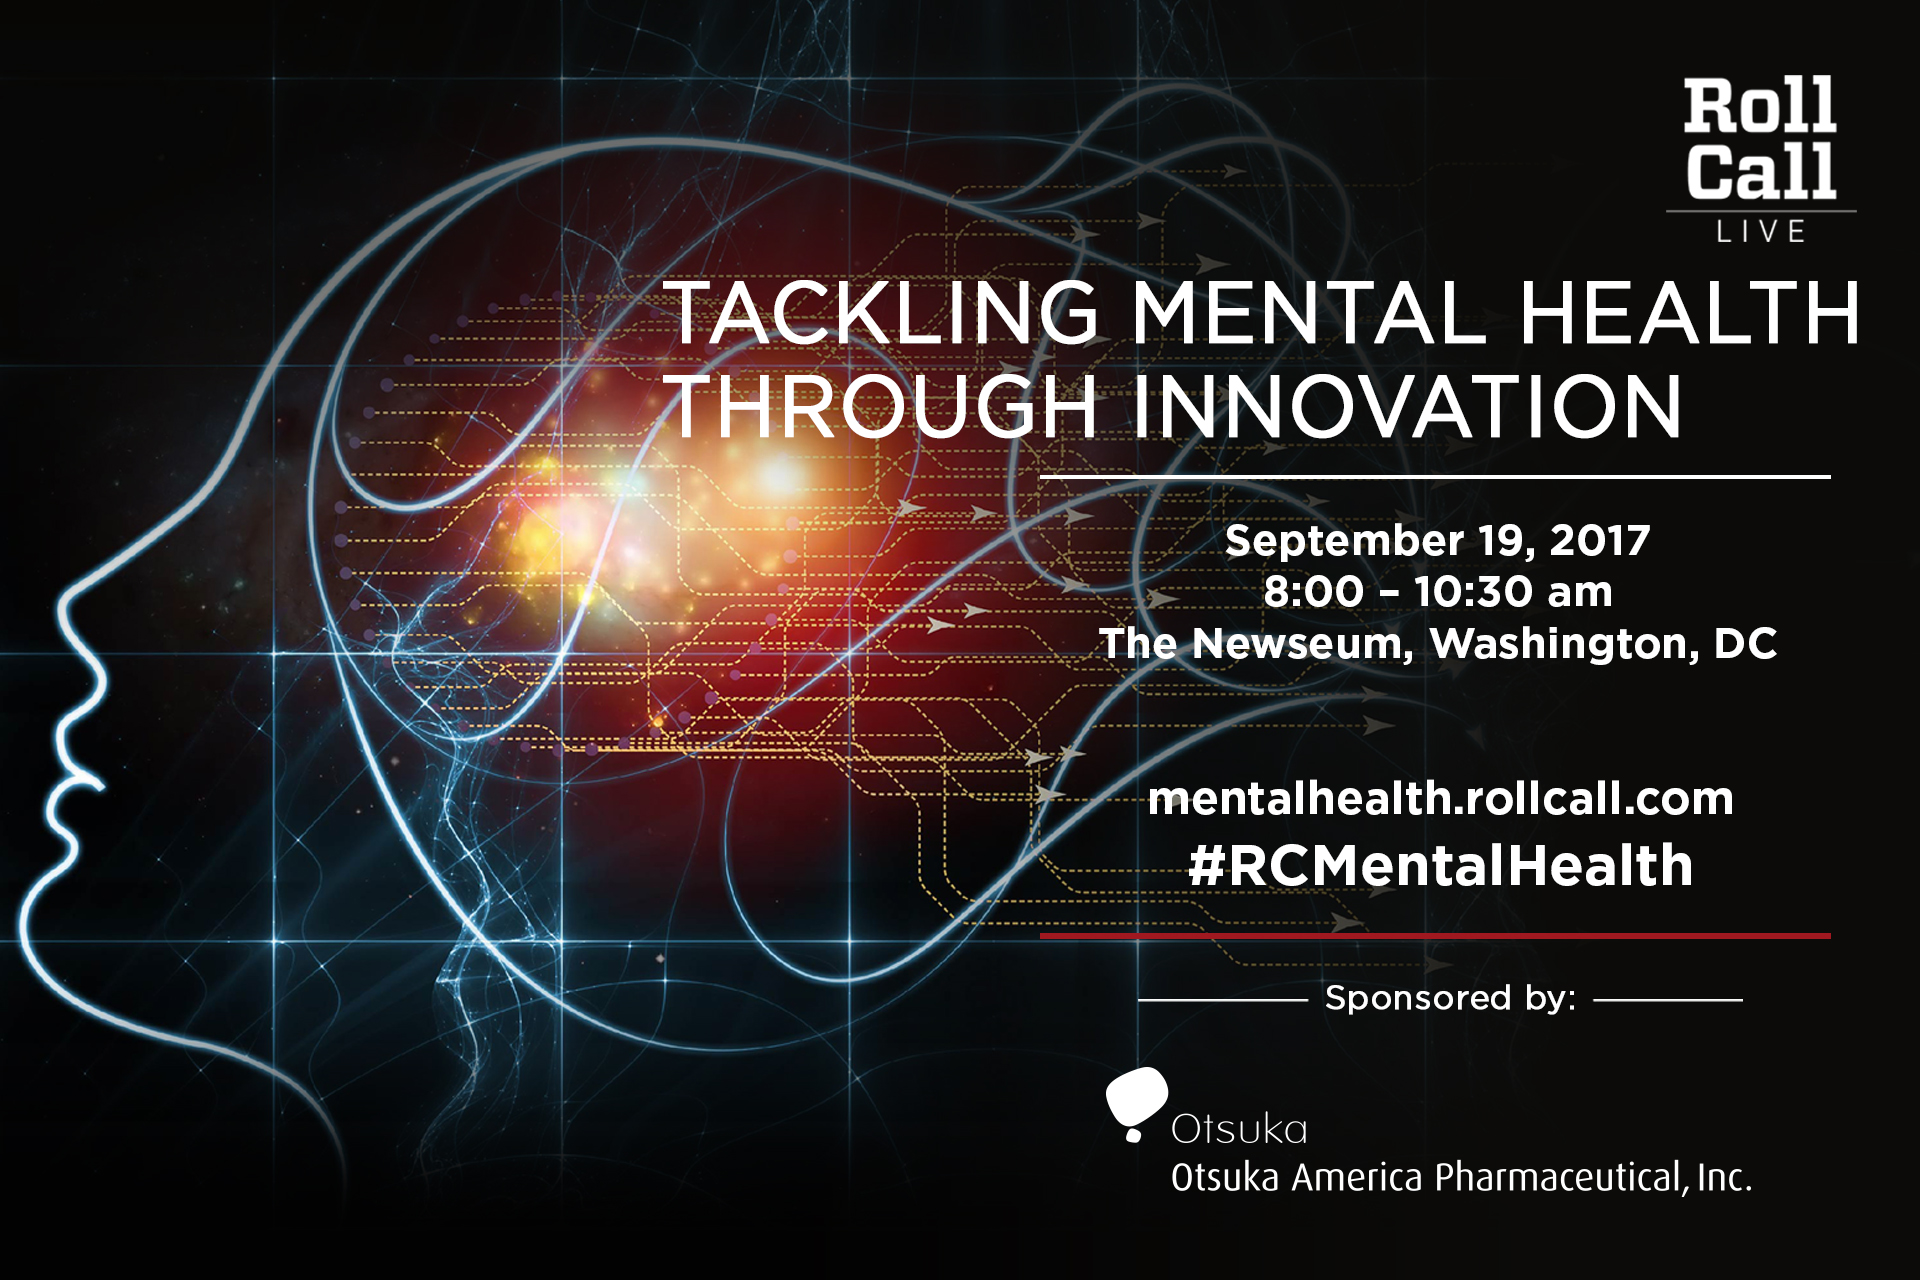 Tackling Mental Health Through Innovation